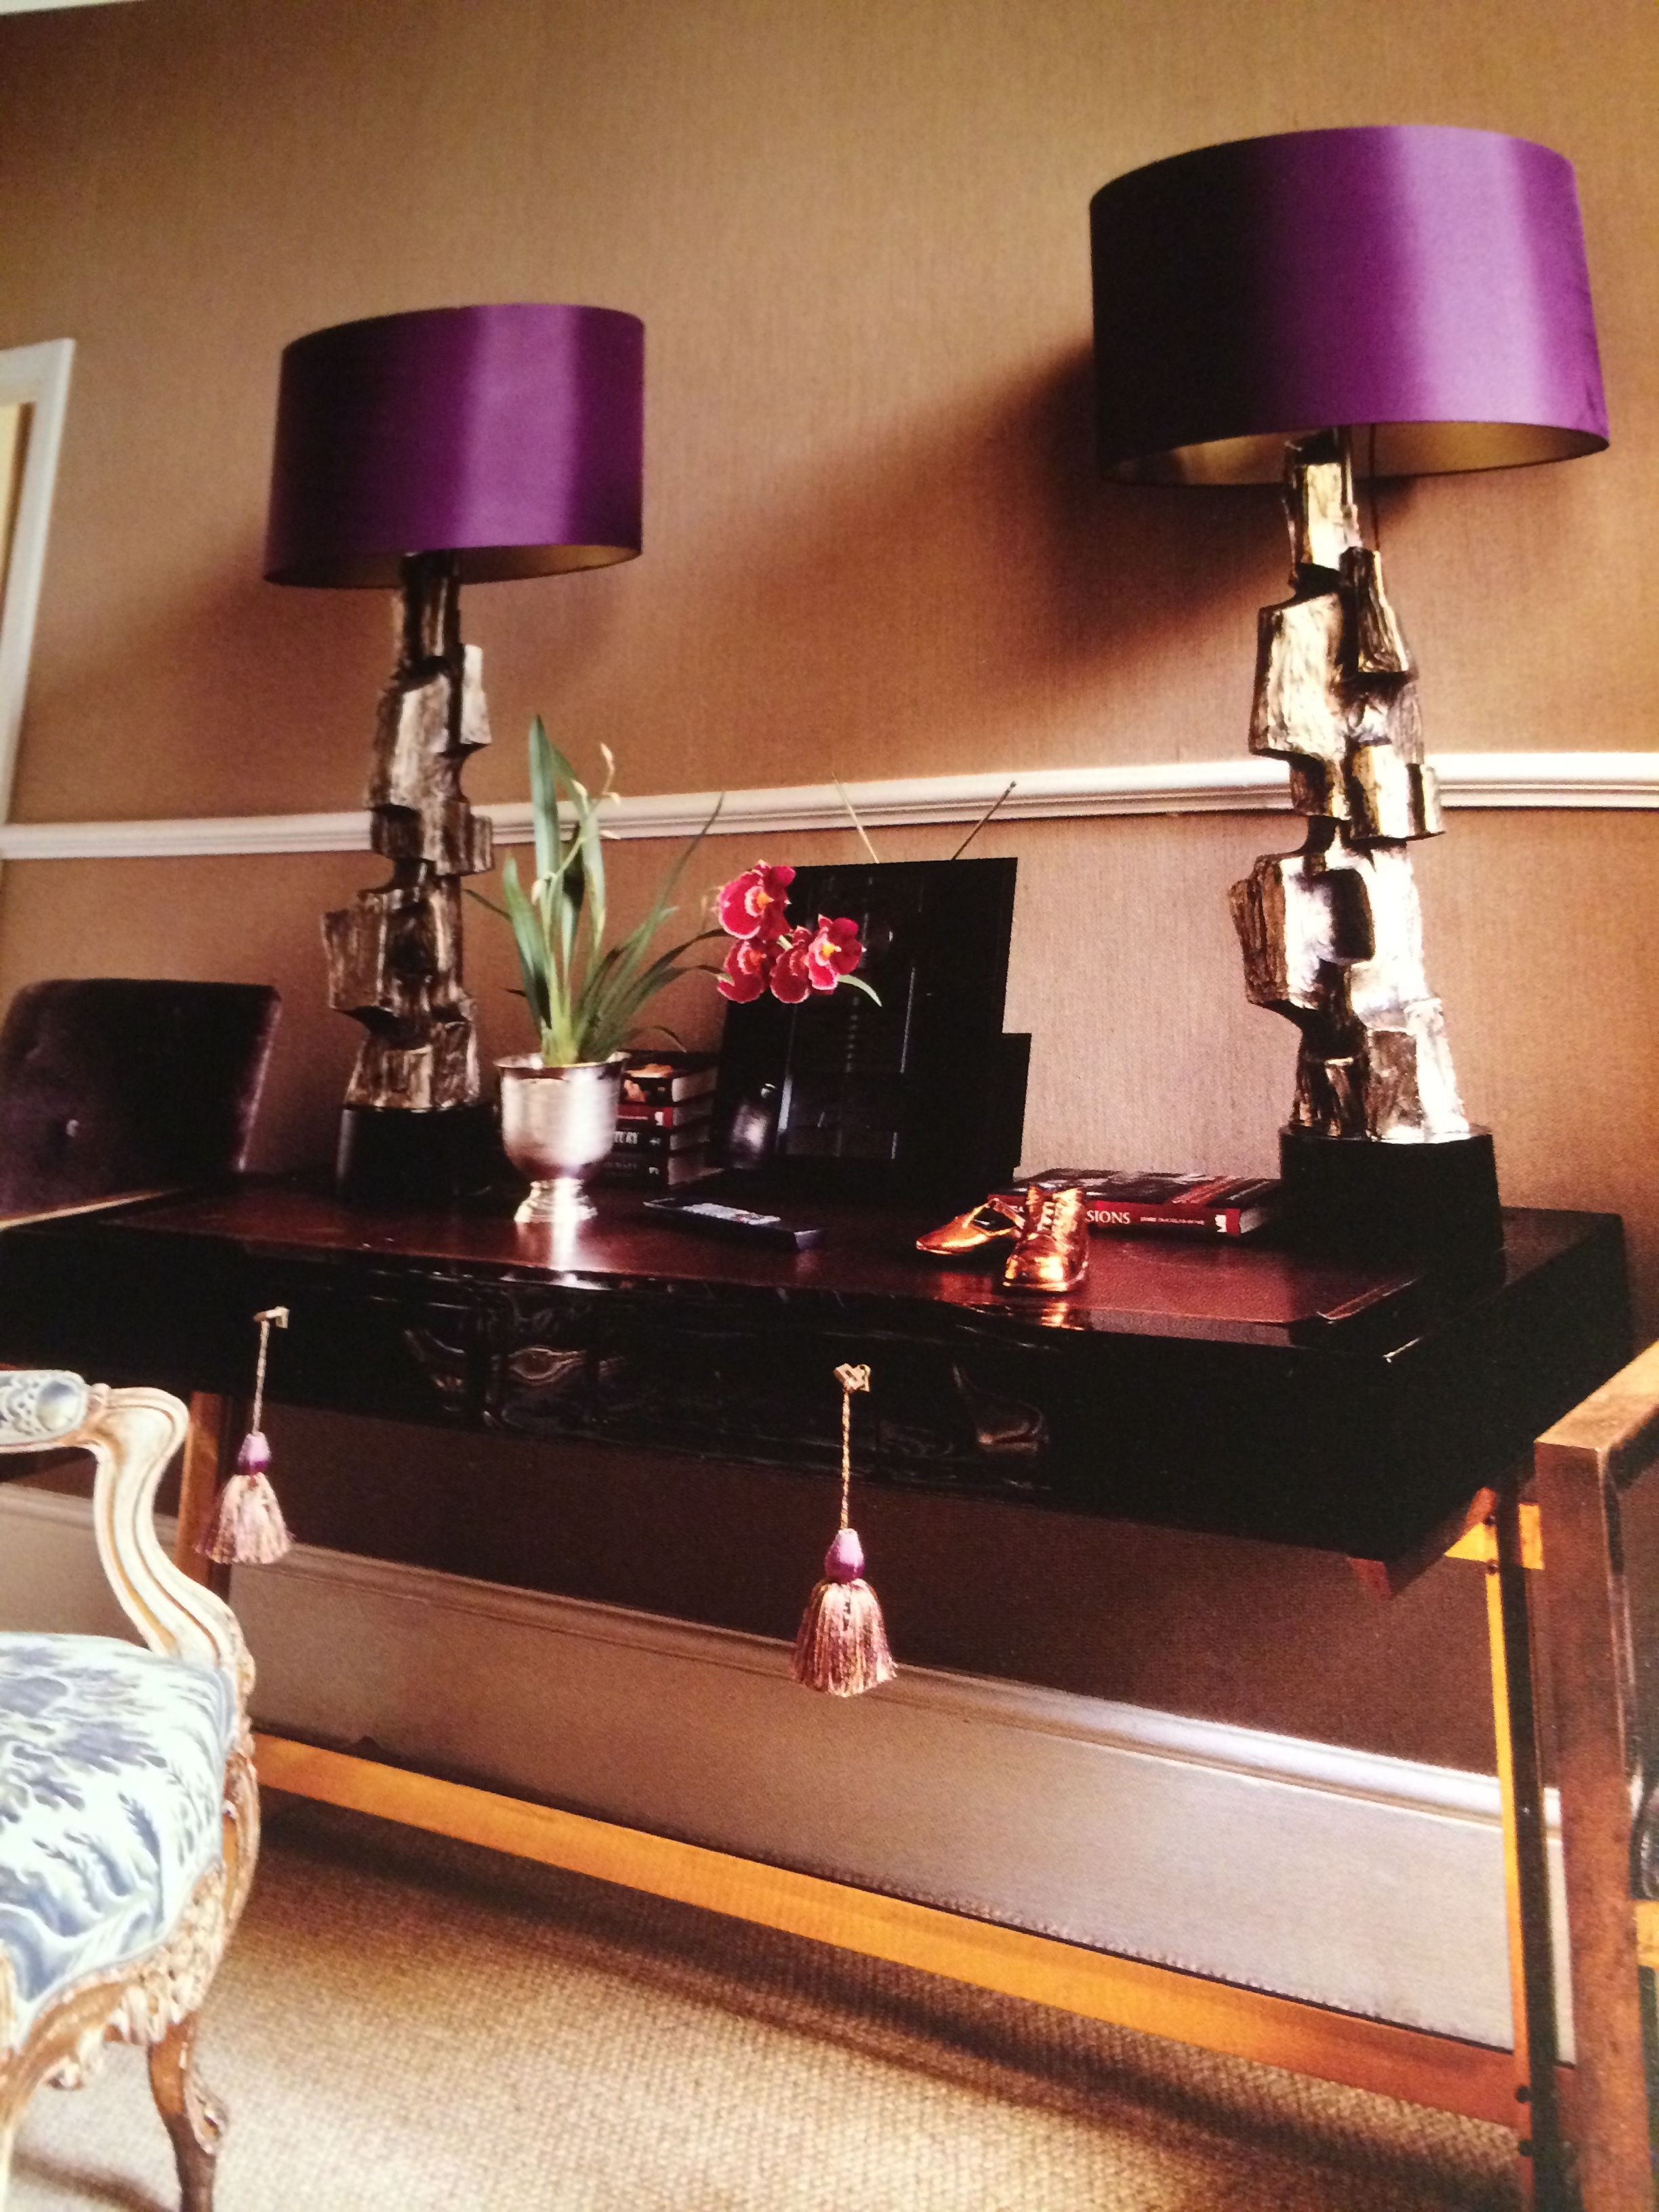 Elegance with sculptural Lamps with amethyst shades